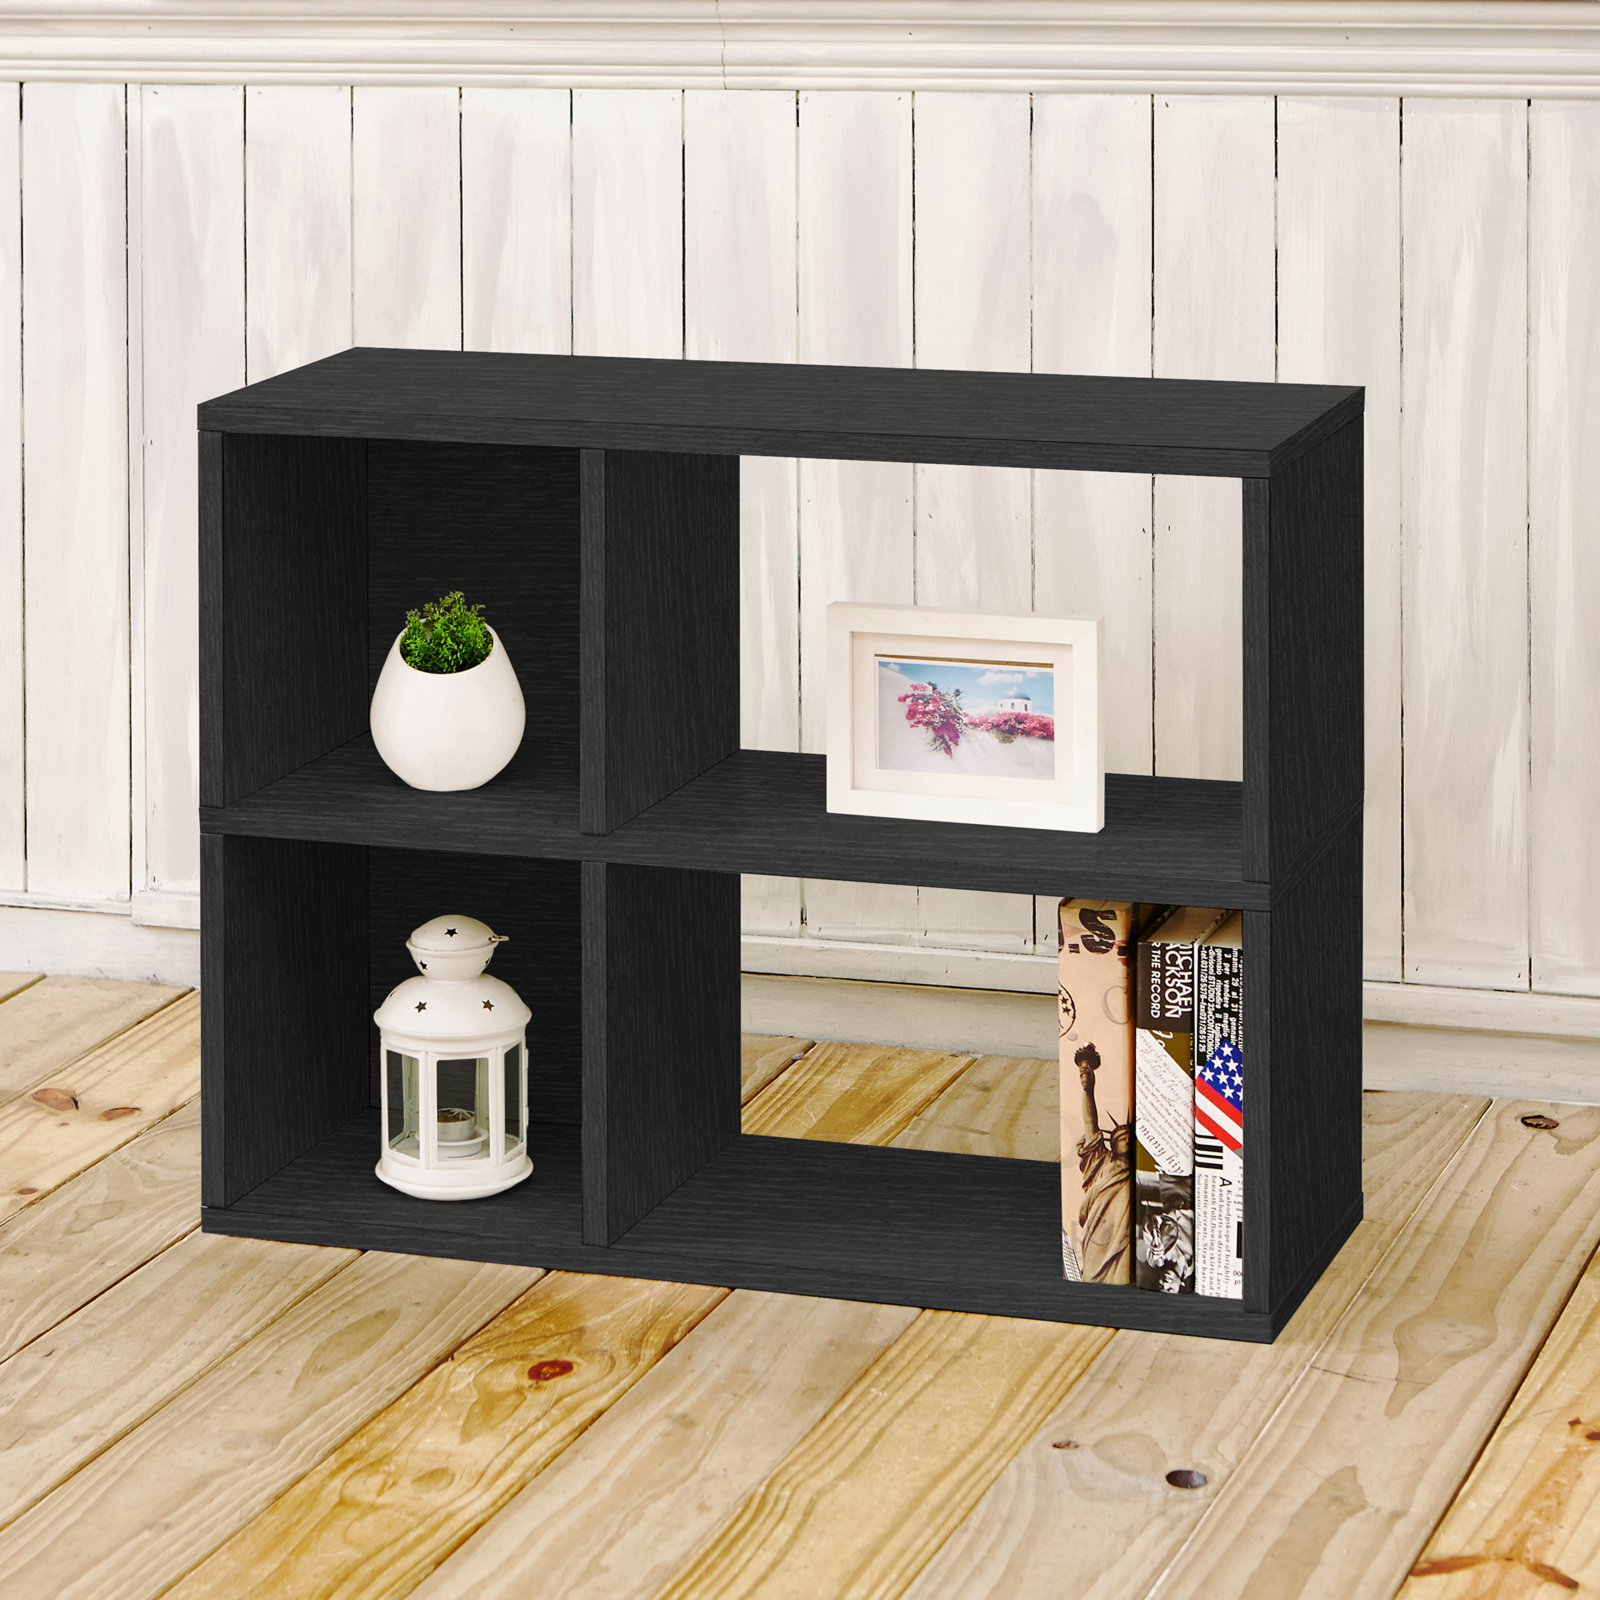 Way Basics Eco 2-Shelf Chelsea Bookcase and Cubby Storage, Black